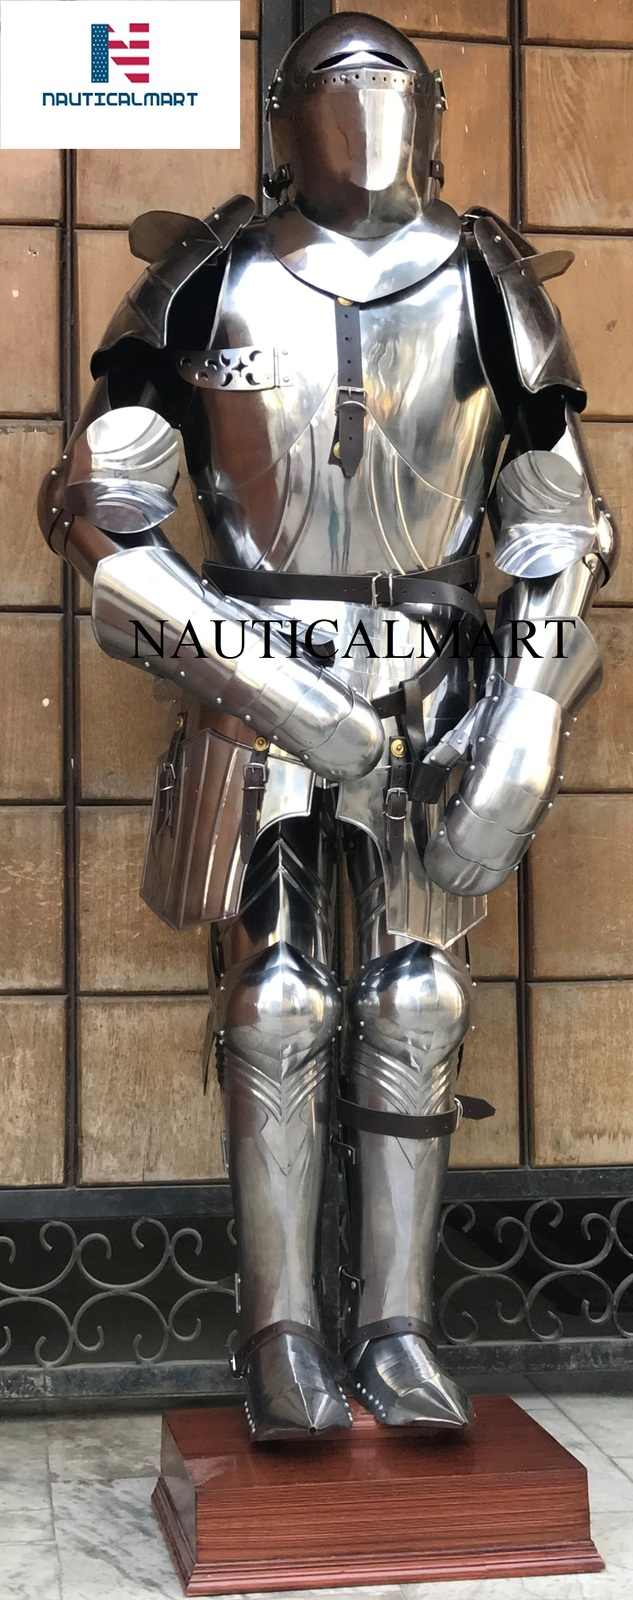 Img 5679 & Medieval Larp 16 Century Suit Of Armour Wearable Halloween Costume ...